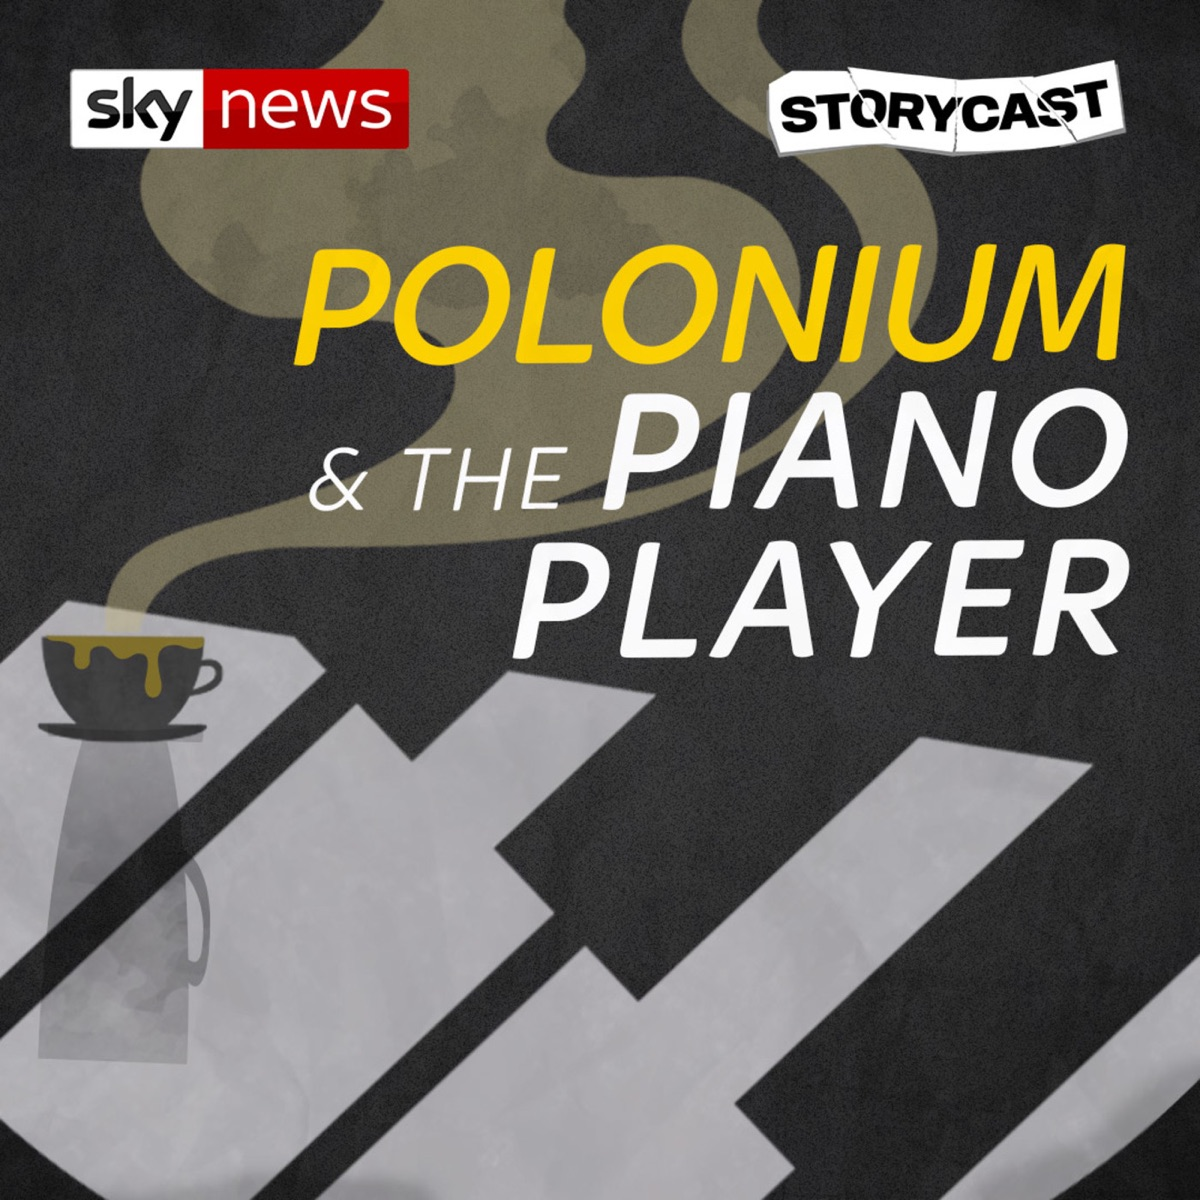 Polonium & the Piano Player